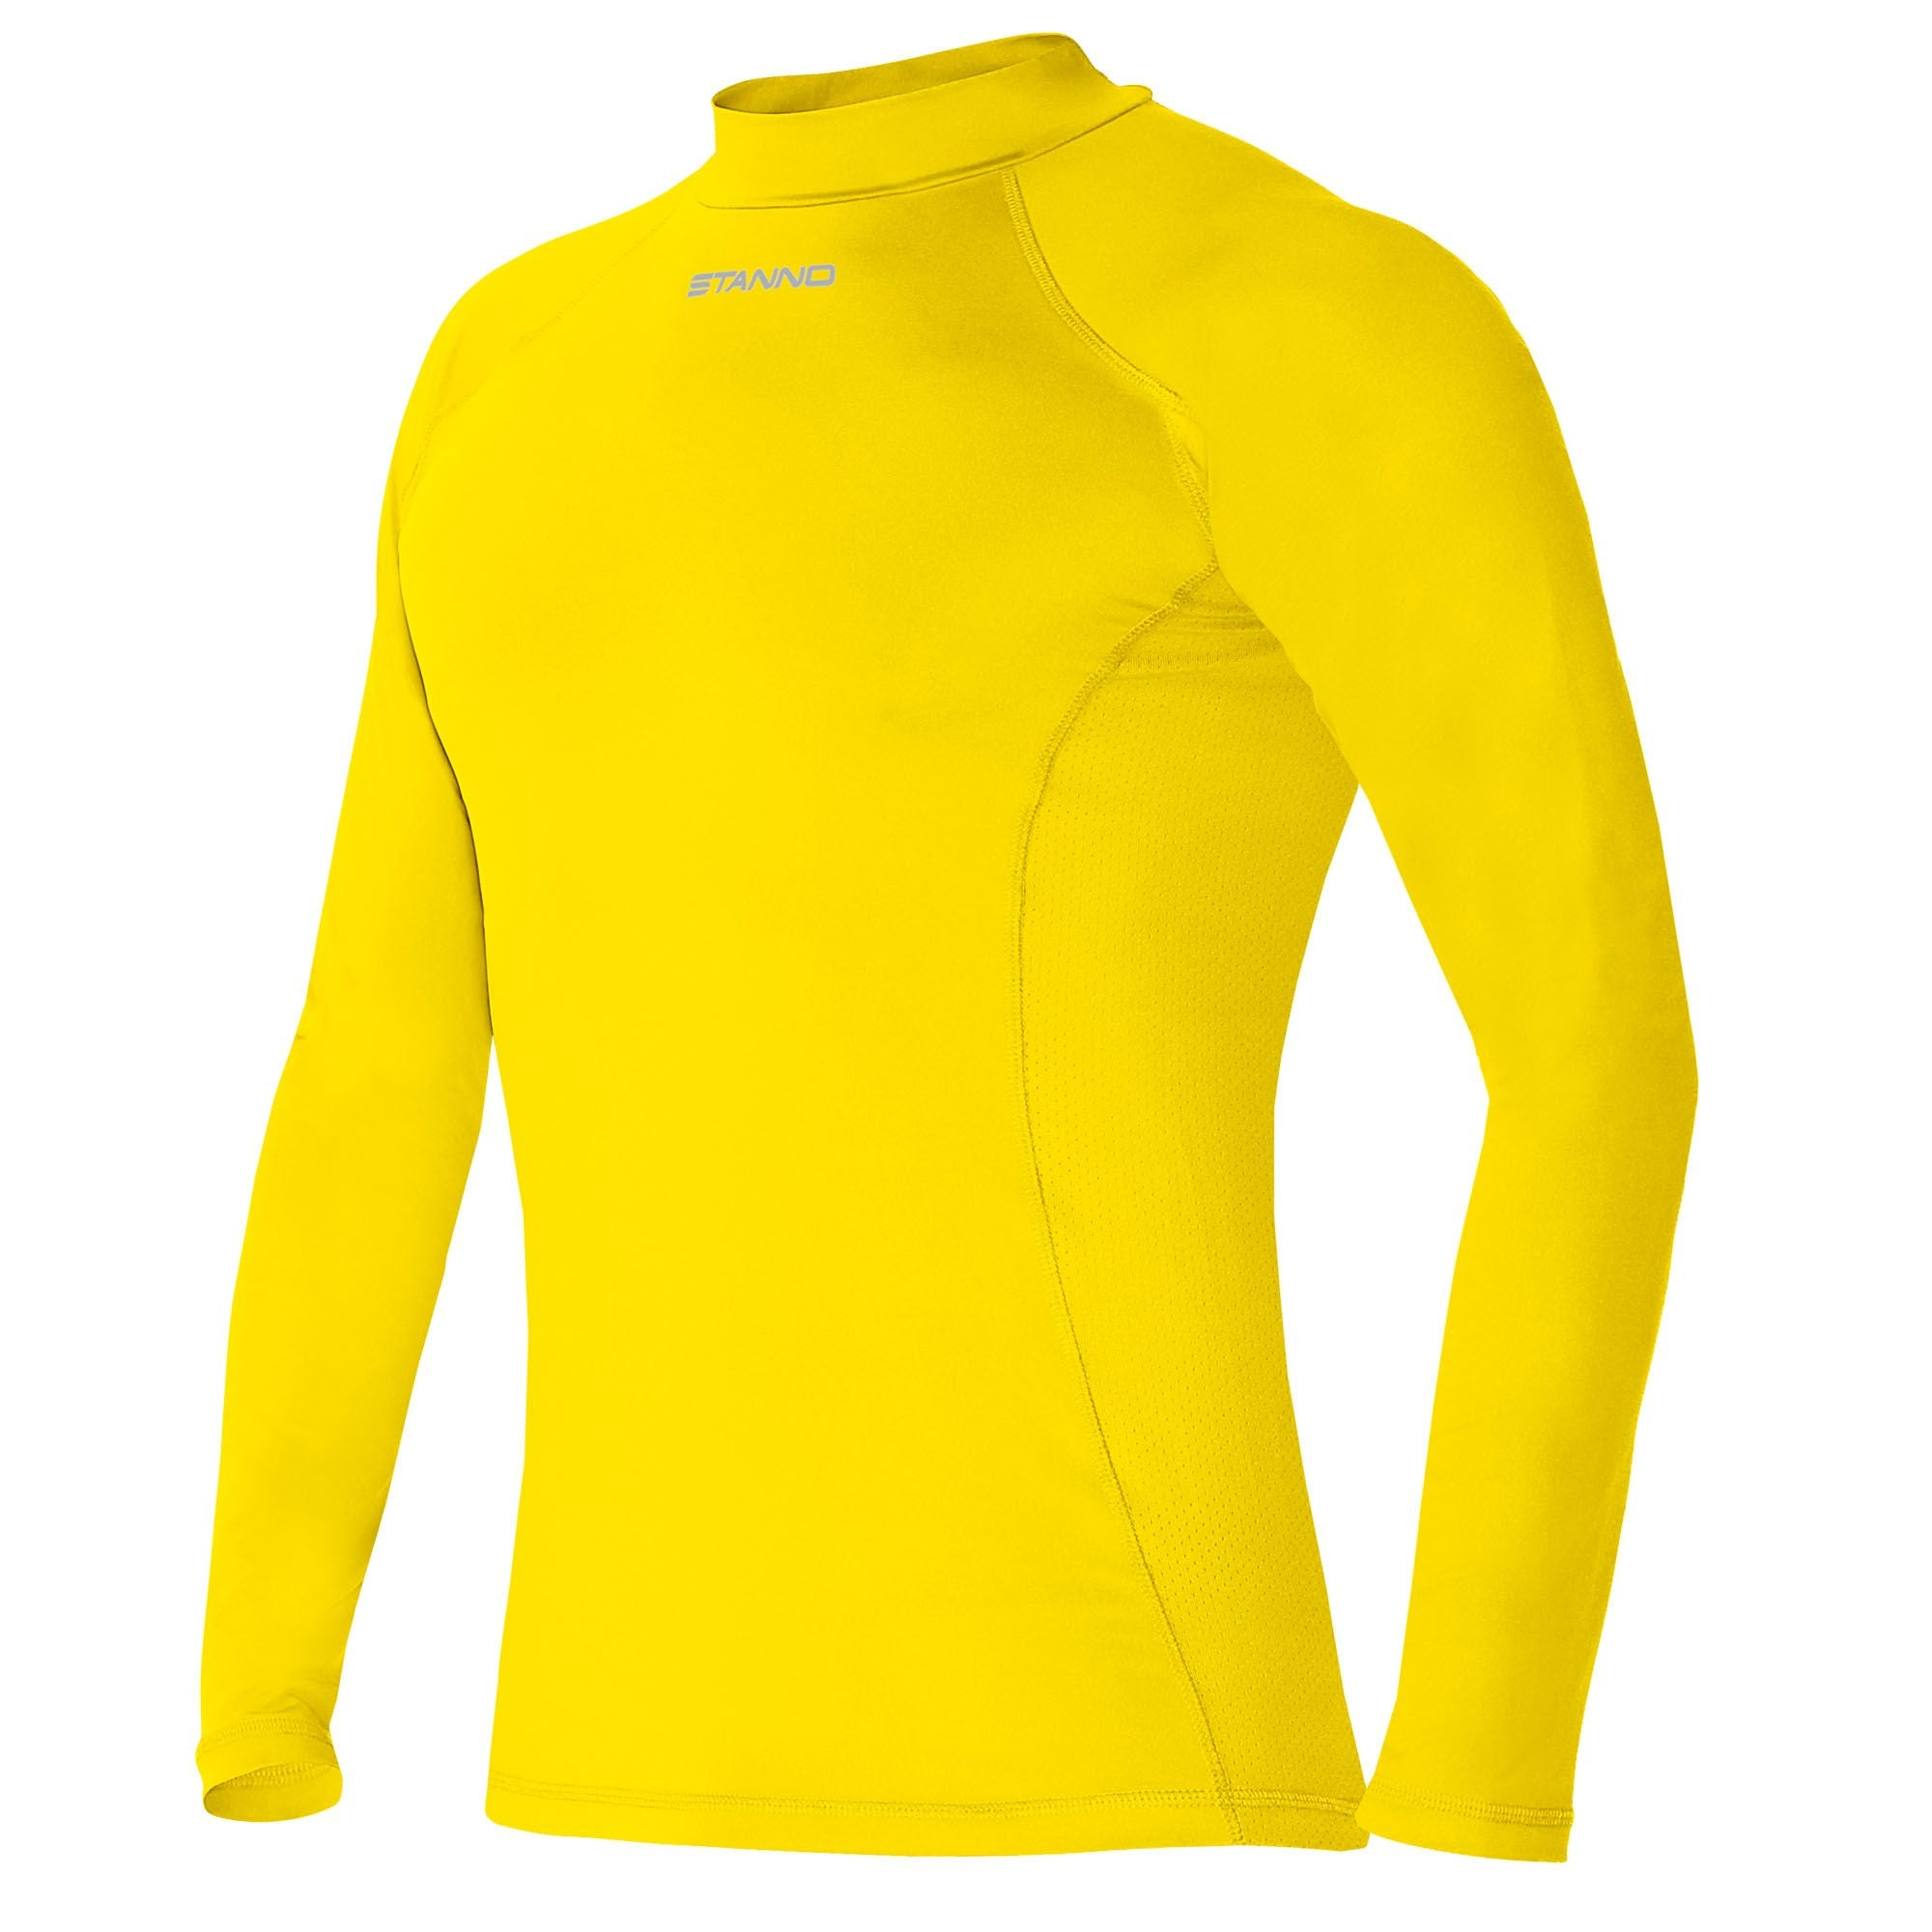 Longfleet YFC - Stanno Pro Base Layer - Yellow